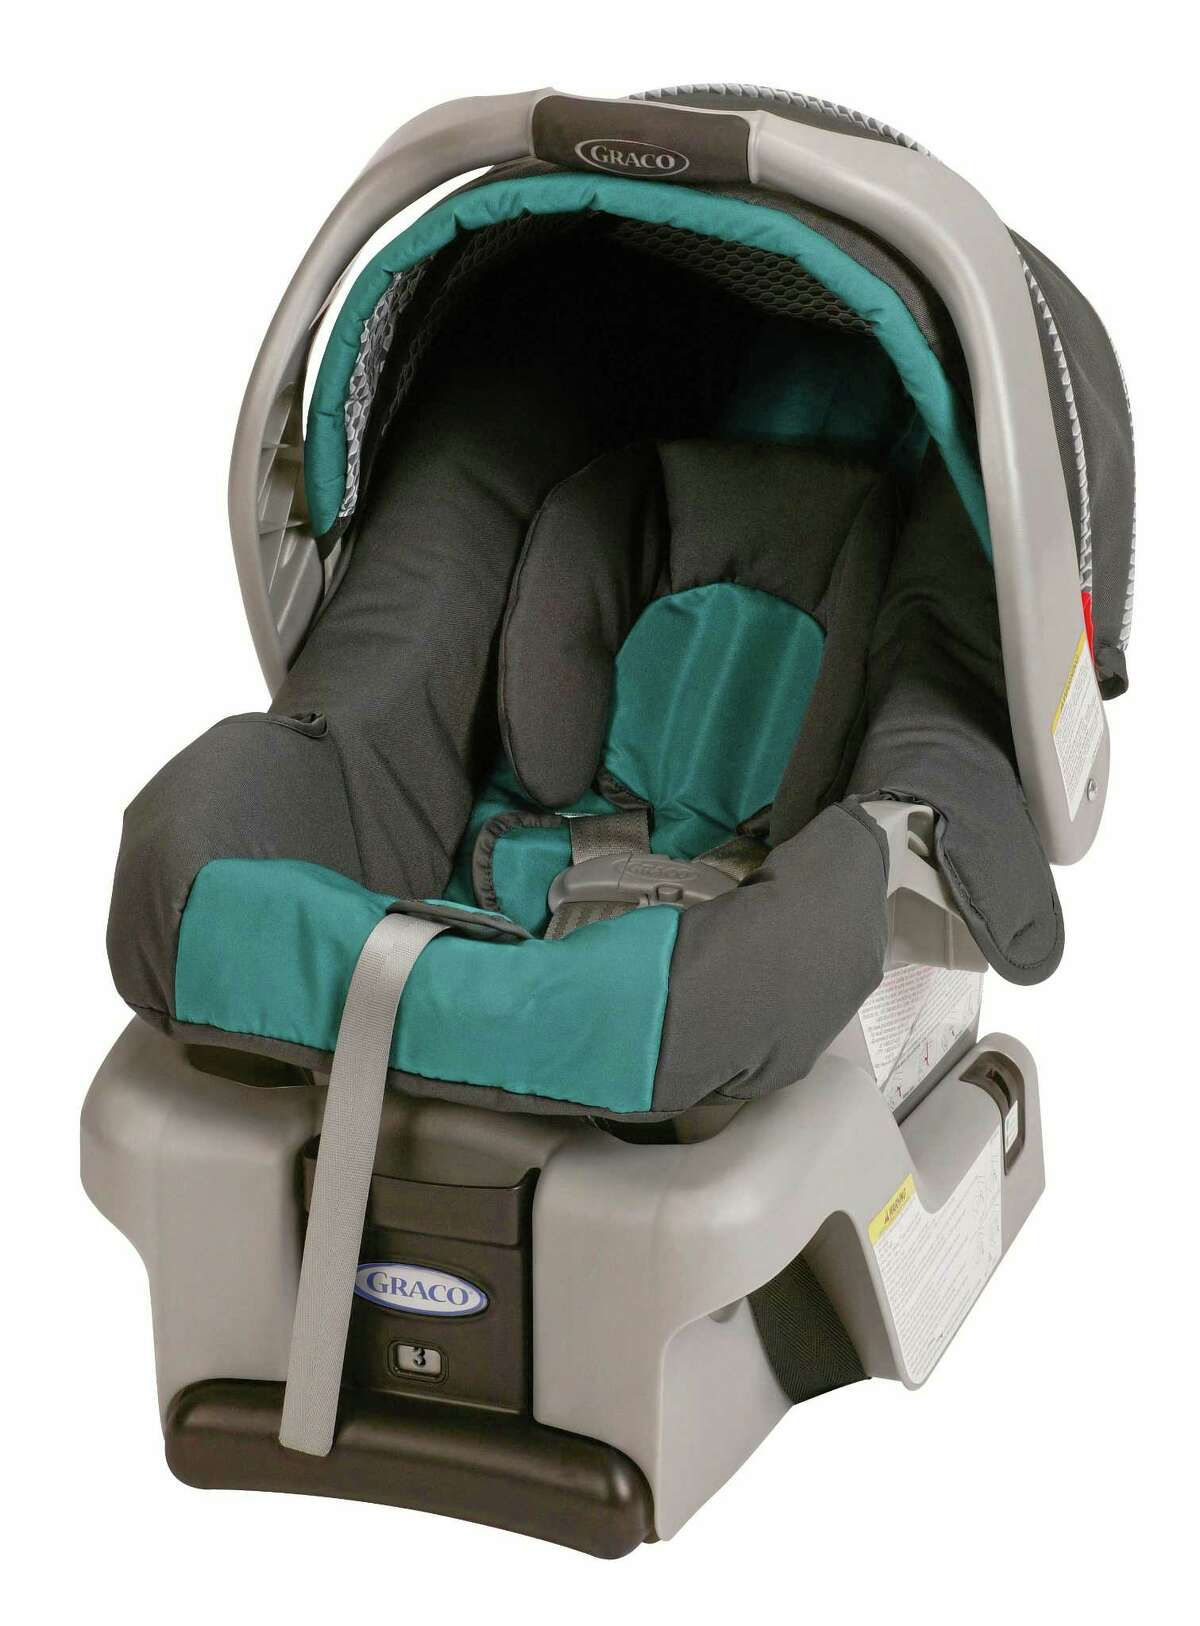 This undated photo provided by Graco Childrenís Products shows a SnugRide Classic Connect infant car seat. Graco Children's Products is recalling 1.9 million infant car seats, bowing to demands from U.S. safety regulators in what is now the largest seat recall in American history. (AP Photo/Graco Childrenís Products)